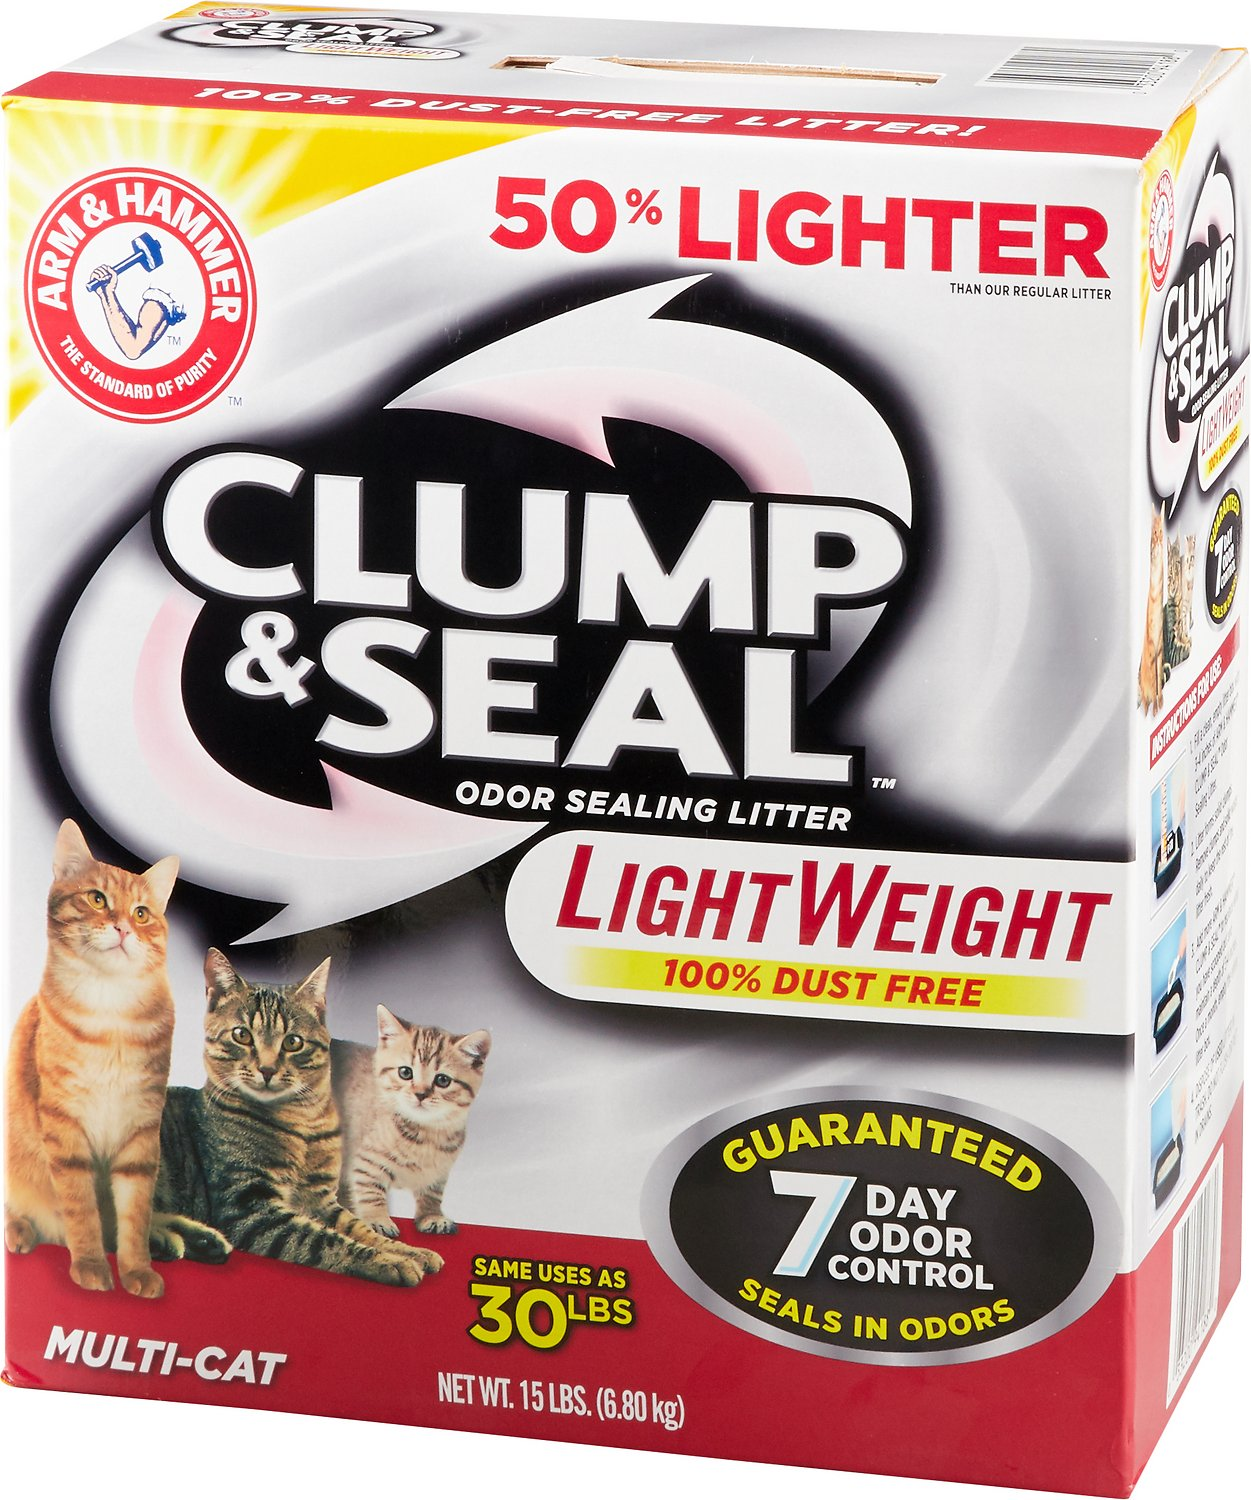 Arm & Hammer Litter Clump & Seal LightWeight Multi-Cat Litter Image